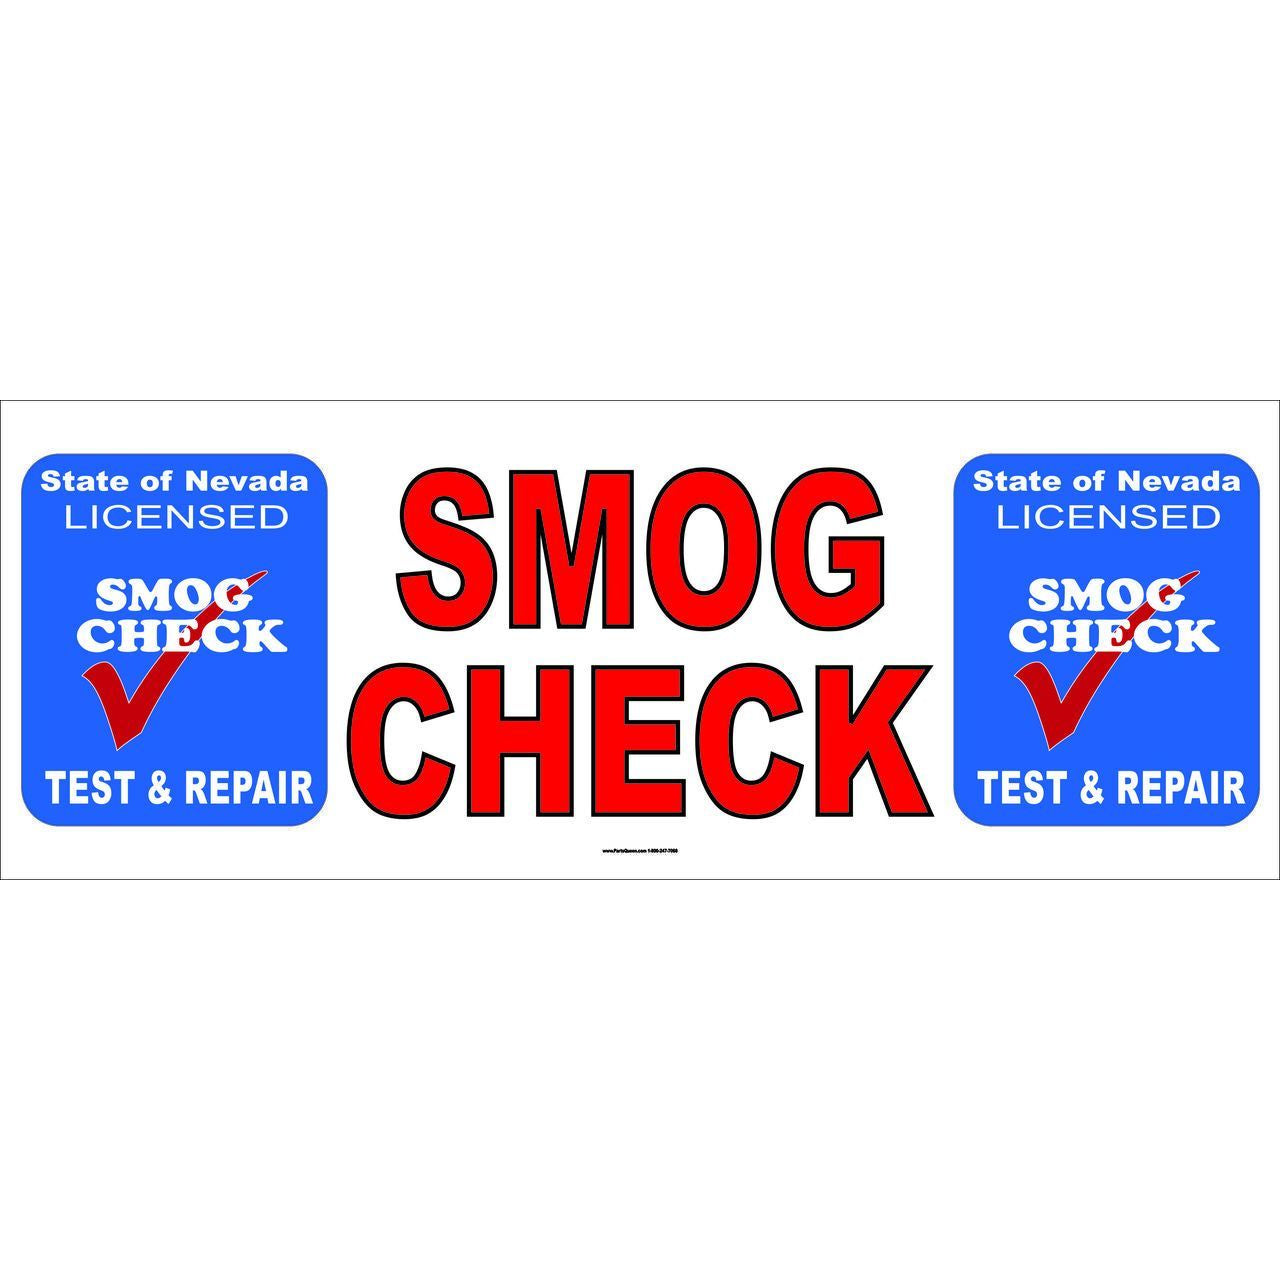 NEVADA SMOG CHECK BANNER TEST & REPAIR NVB3